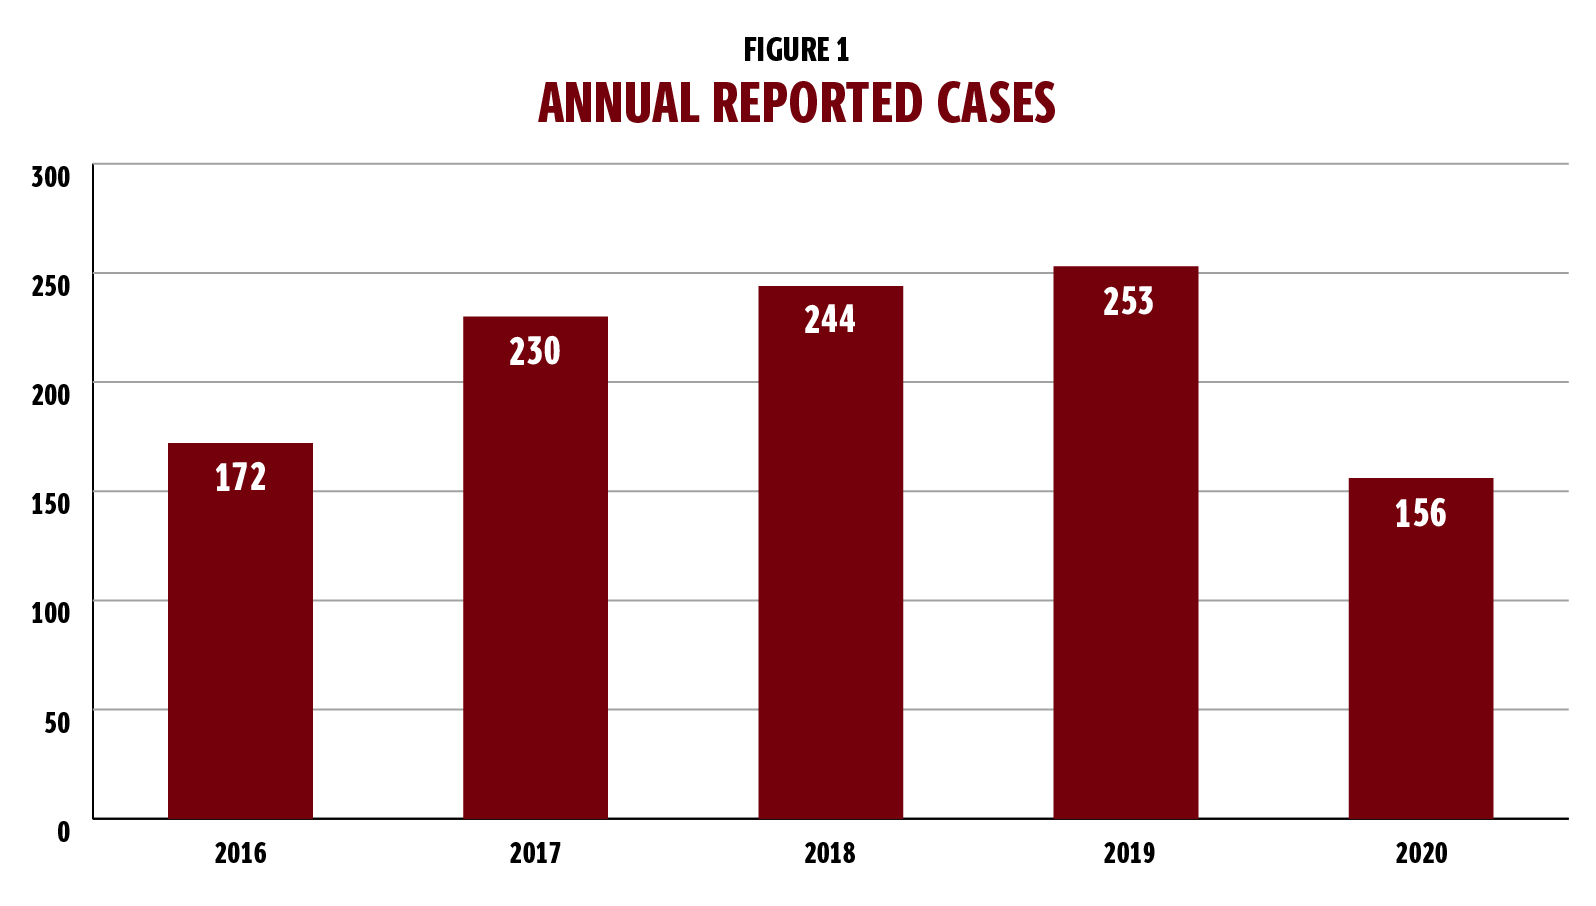 Figure 1 is a bar graph showing annual reported cases of sexual harassment and violence. The graph includes five bars, covering 2016 through 2020. In 2016, there were 172 cases. In 2017 there were 230 cases. In 2018, there were 244 cases. In 2019, there were 253 cases. In 2020, there were 156 cases.